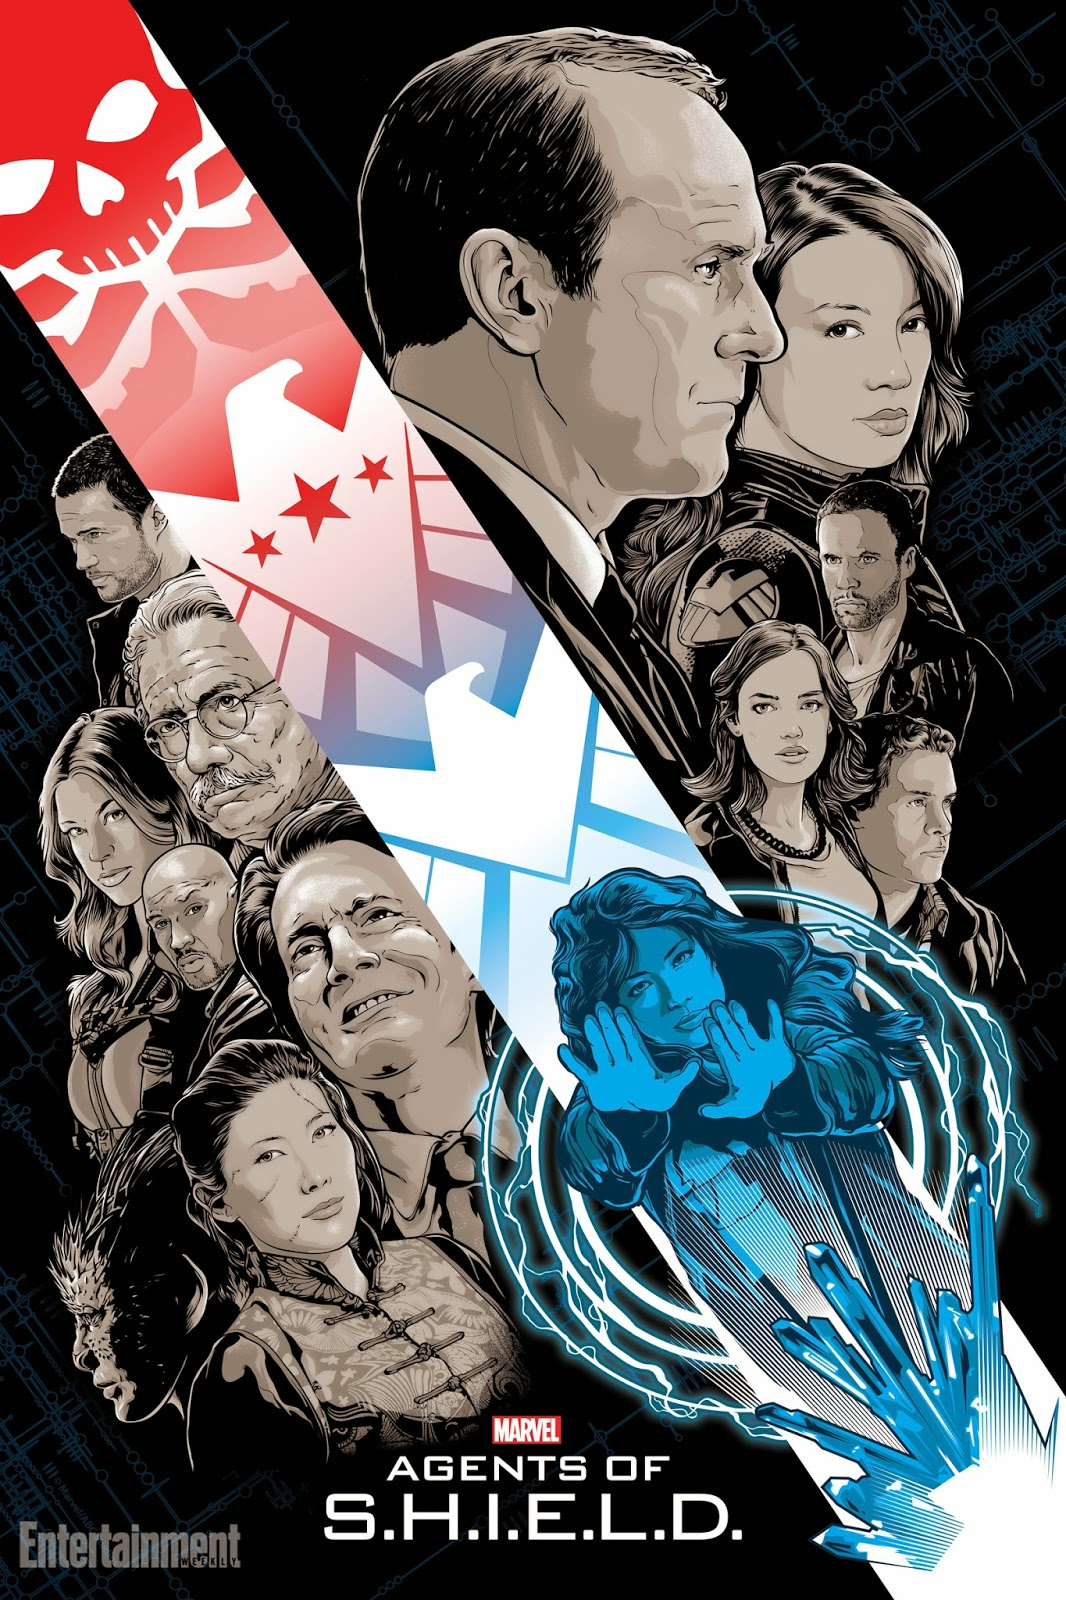 Agents Of Shield Images Exclusive Fanart Posters Hd Wallpaper